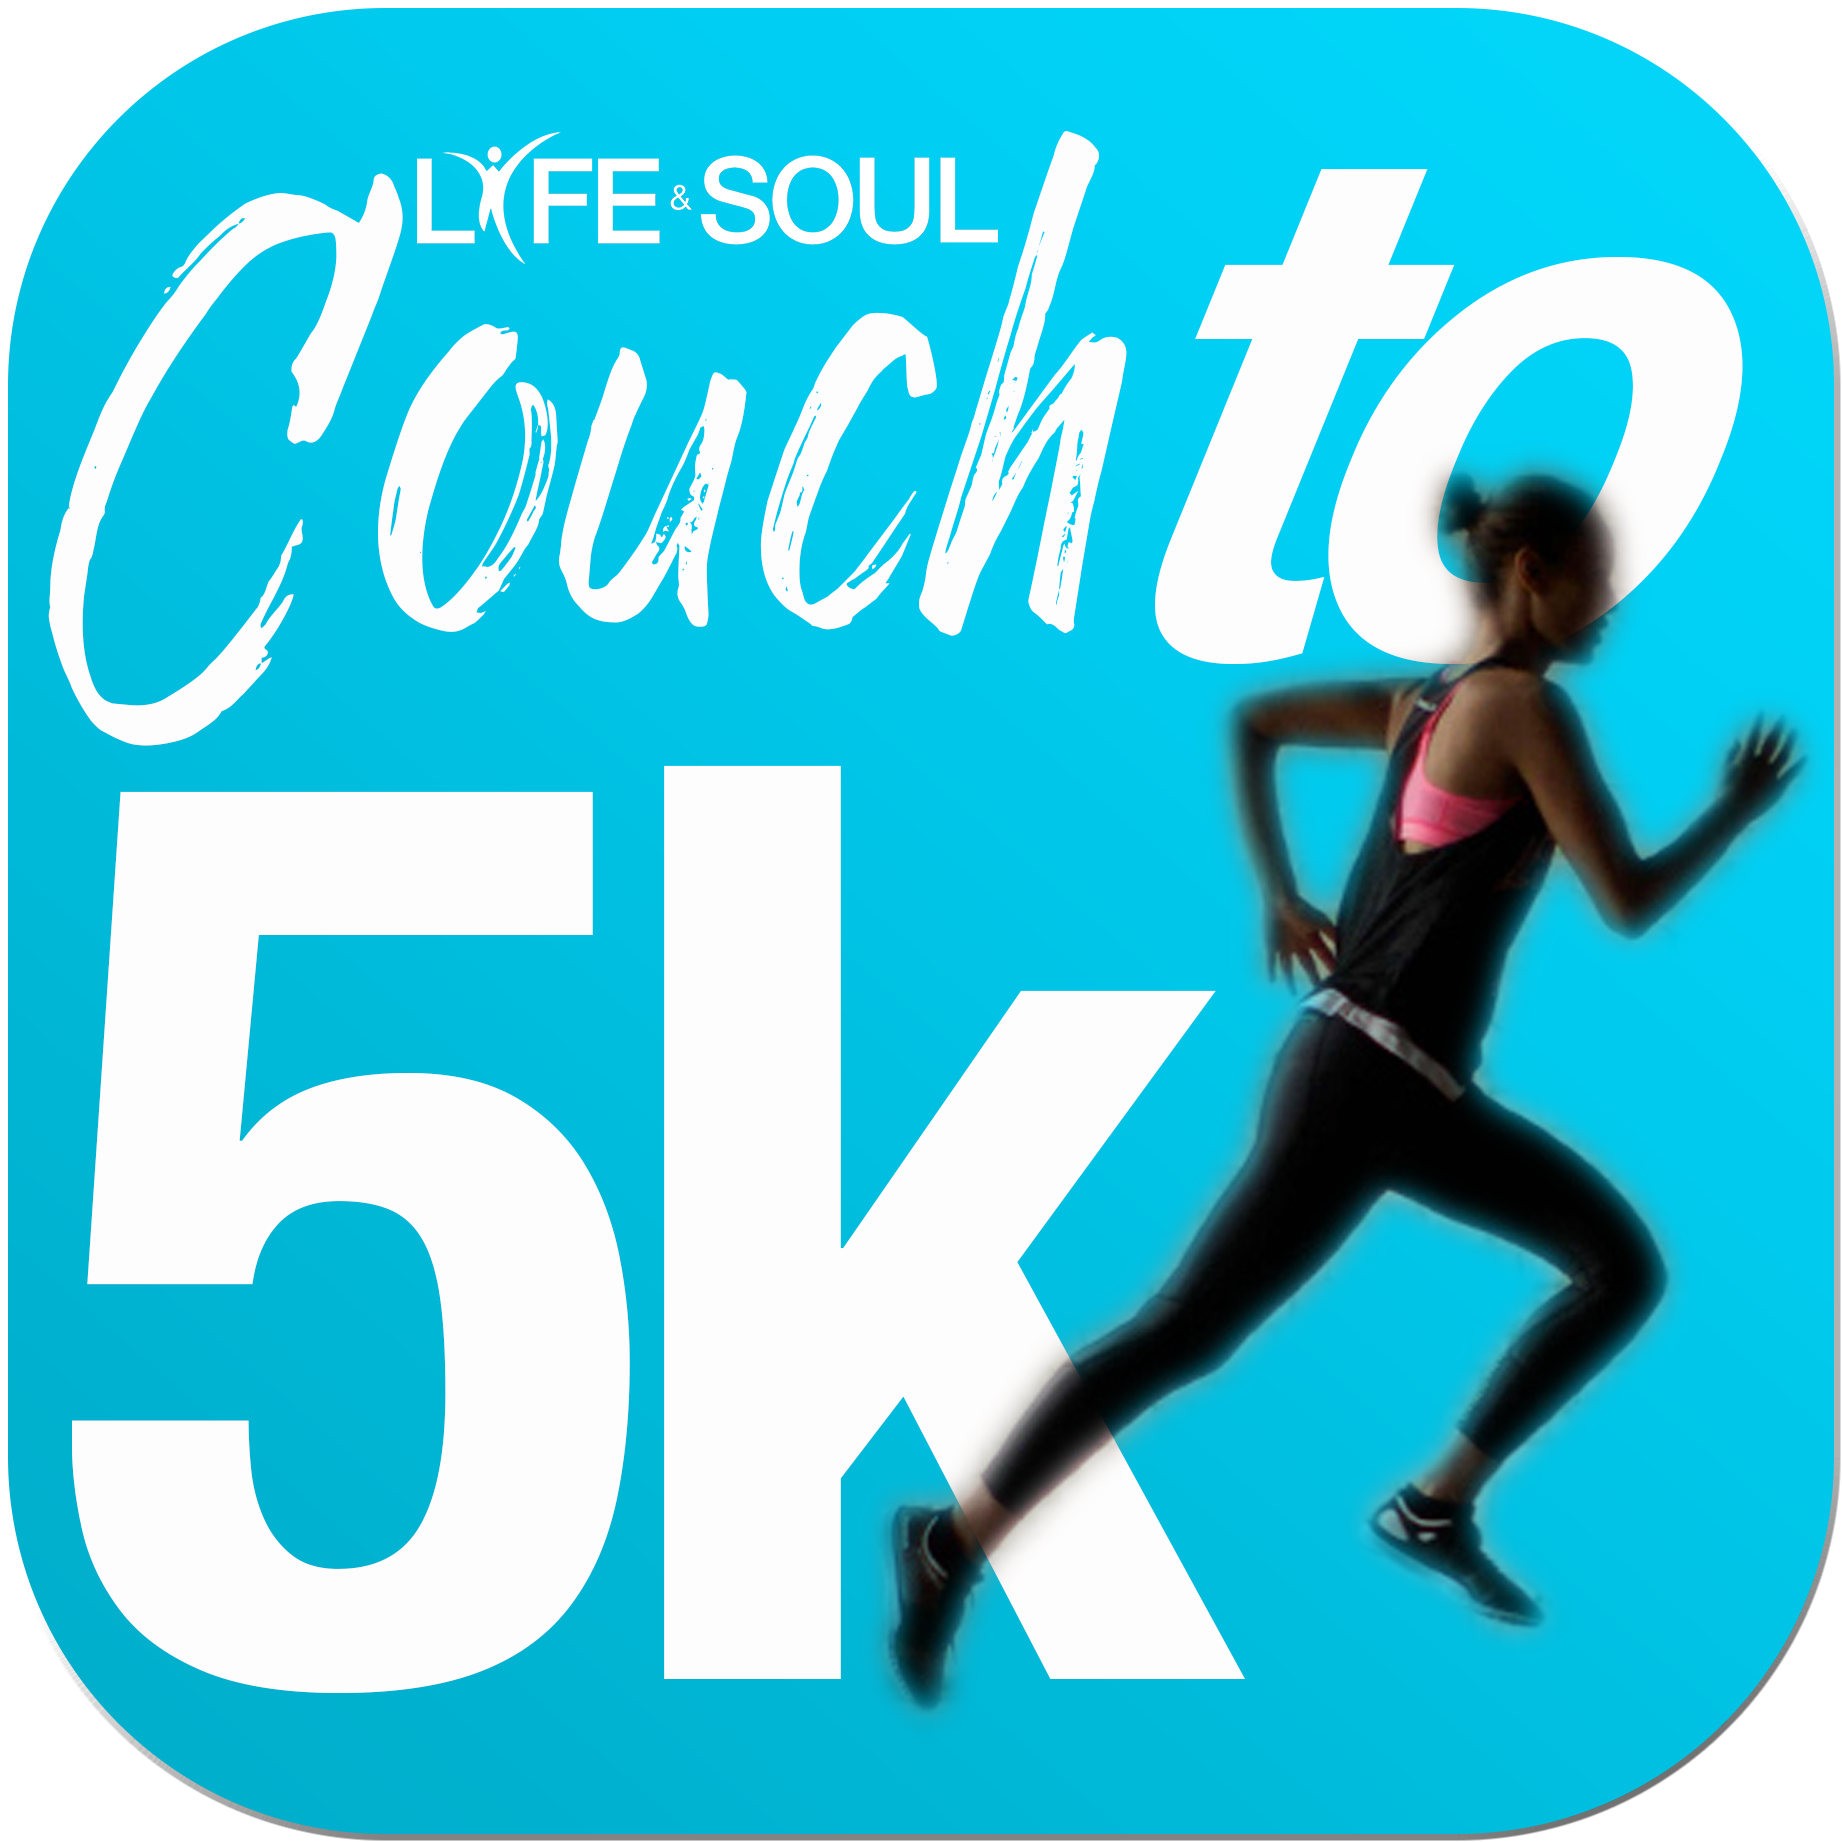 couch to 5 k logo to word